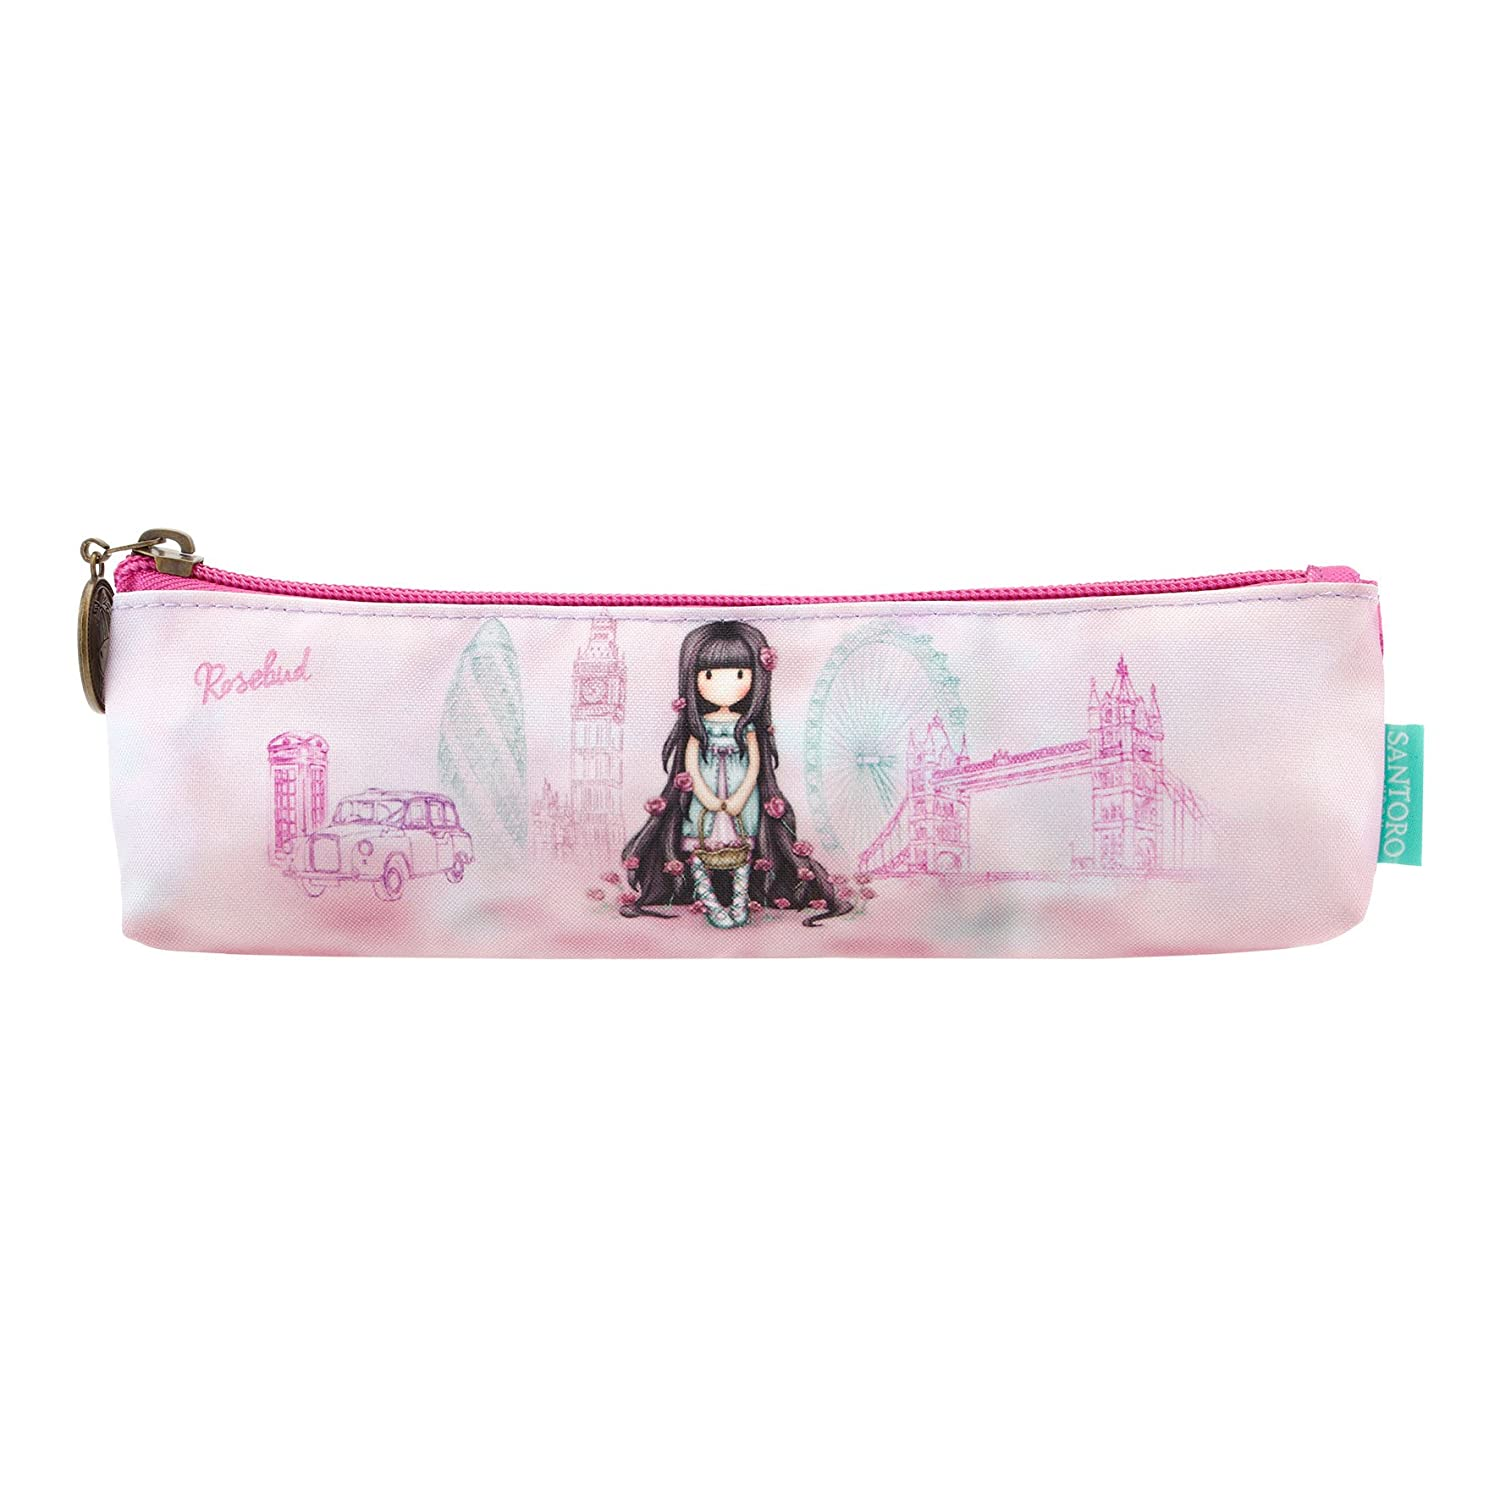 Gorjuss Cityscape Rosebud Pencil Case: Amazon.es: Hogar